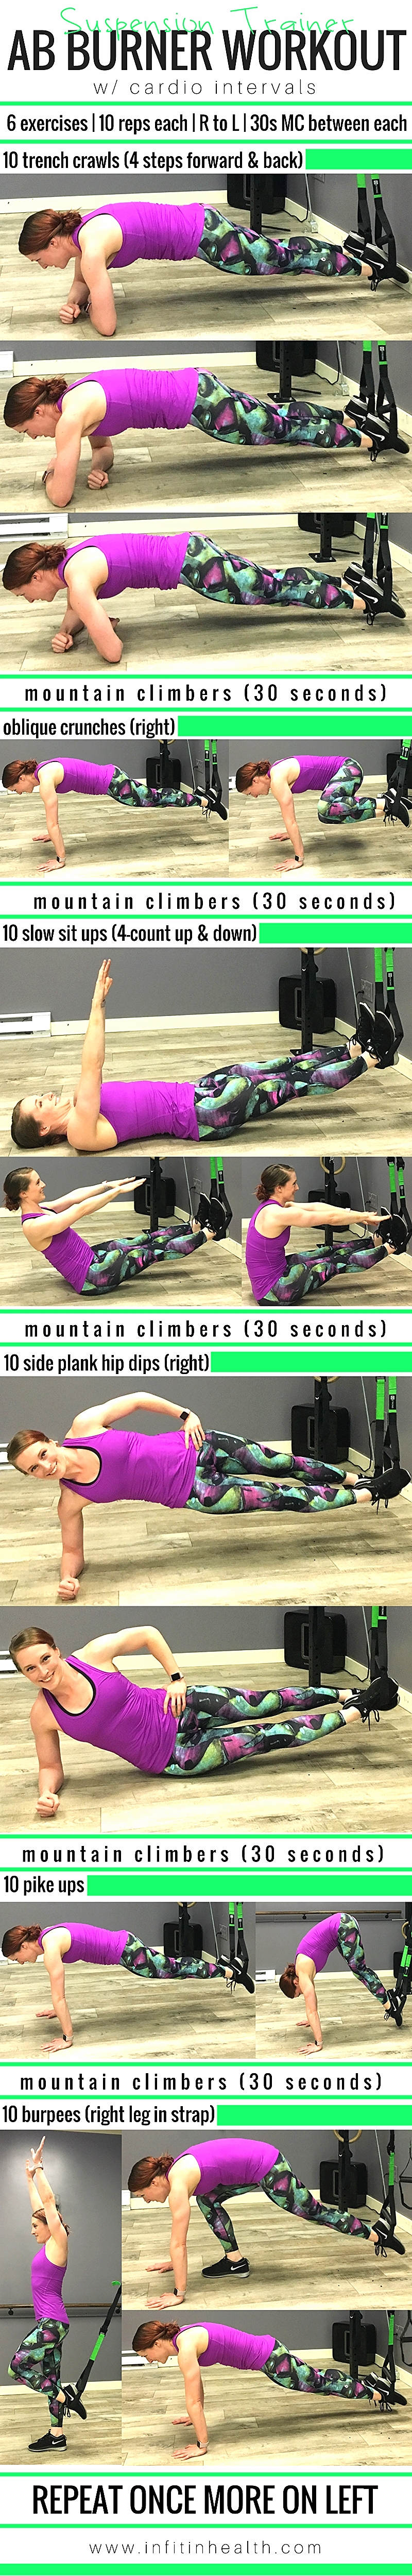 Suspension Trainer Ab Burner Workout w/ Cardio Intervals